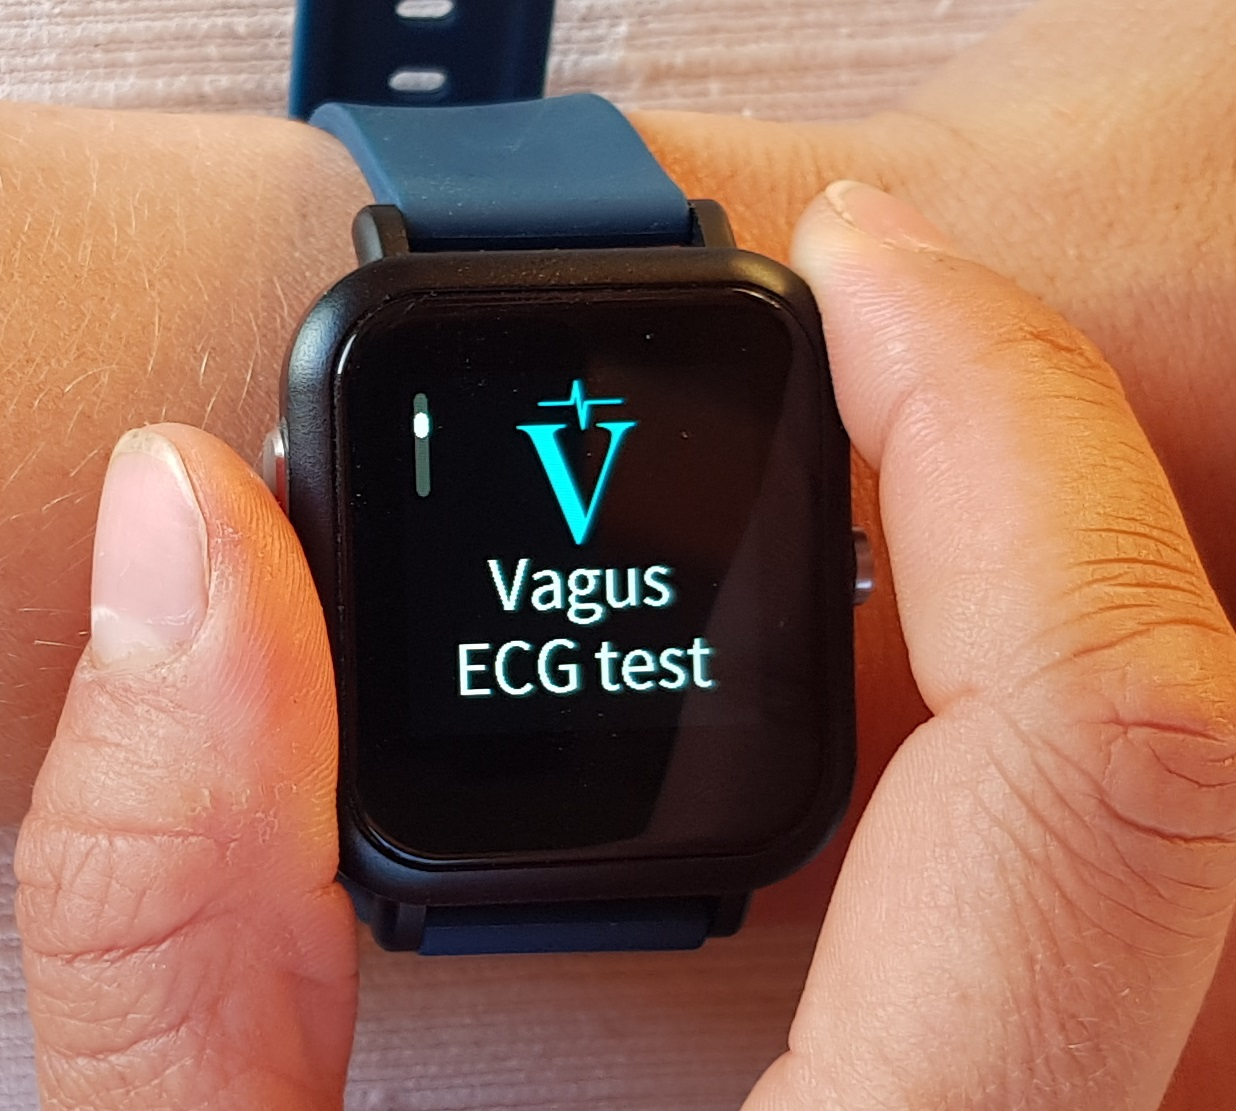 Our Vagus Test explained 1: Much more than Heart Rate Variability (HRV)